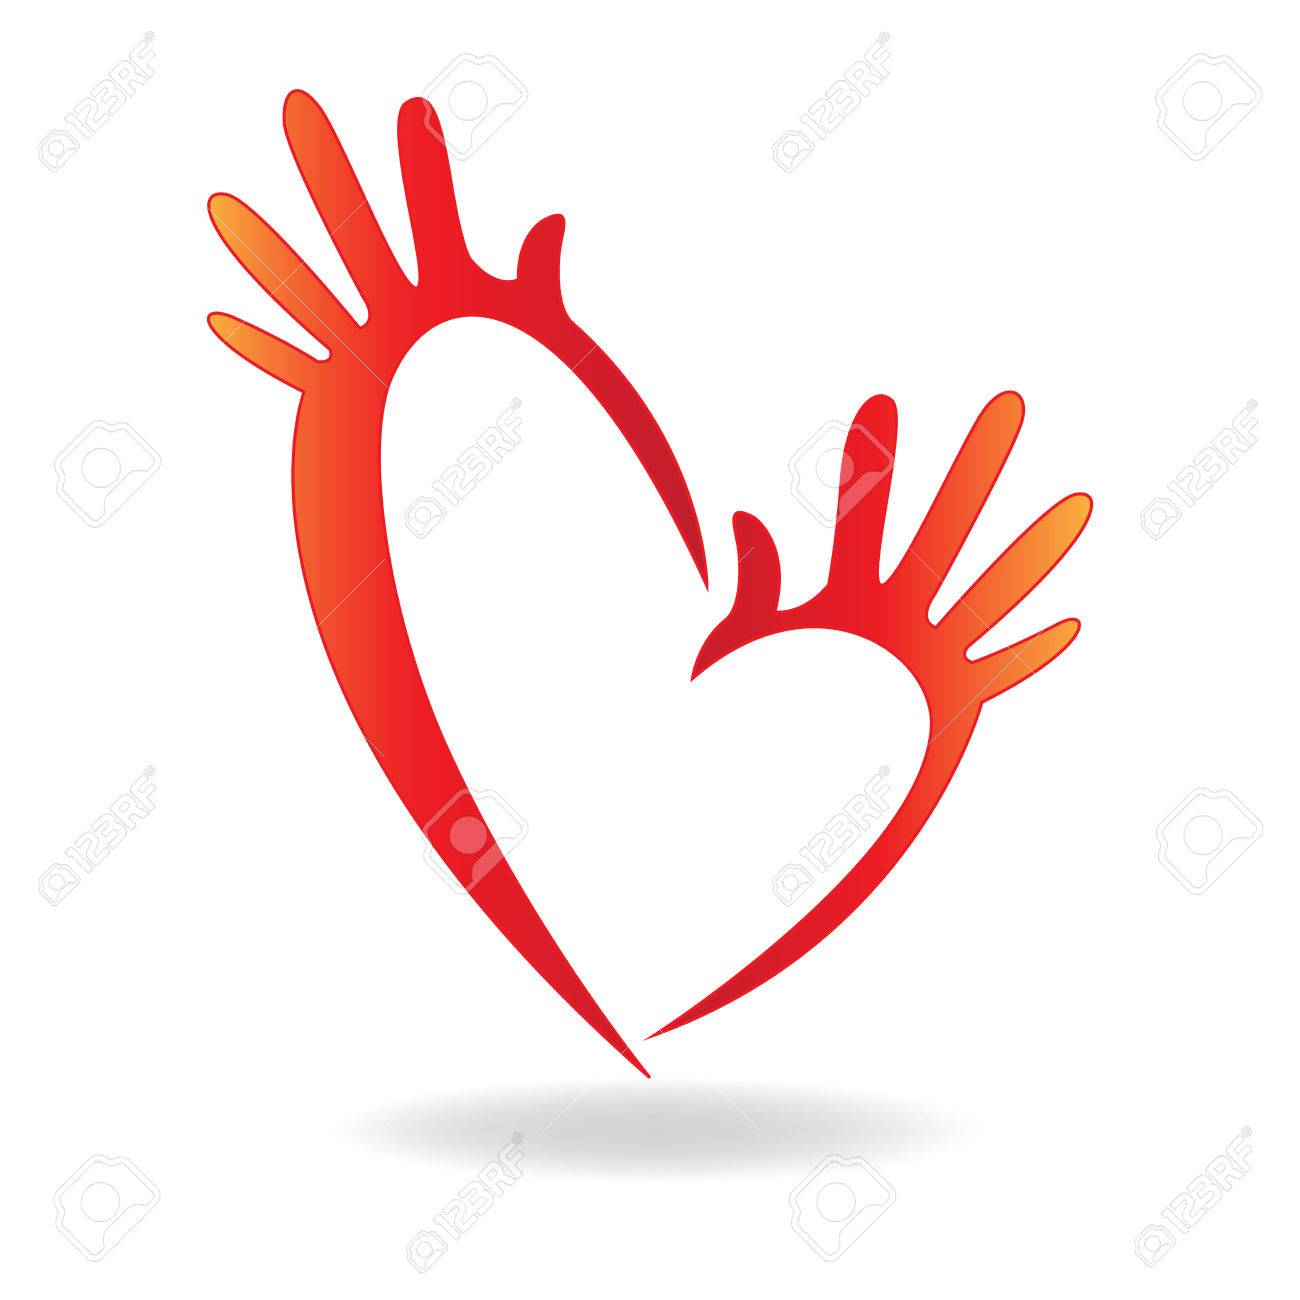 hands heart shape icon concept of helping and charity for sick rh 123rf com free vector hands shaking free vector hands download